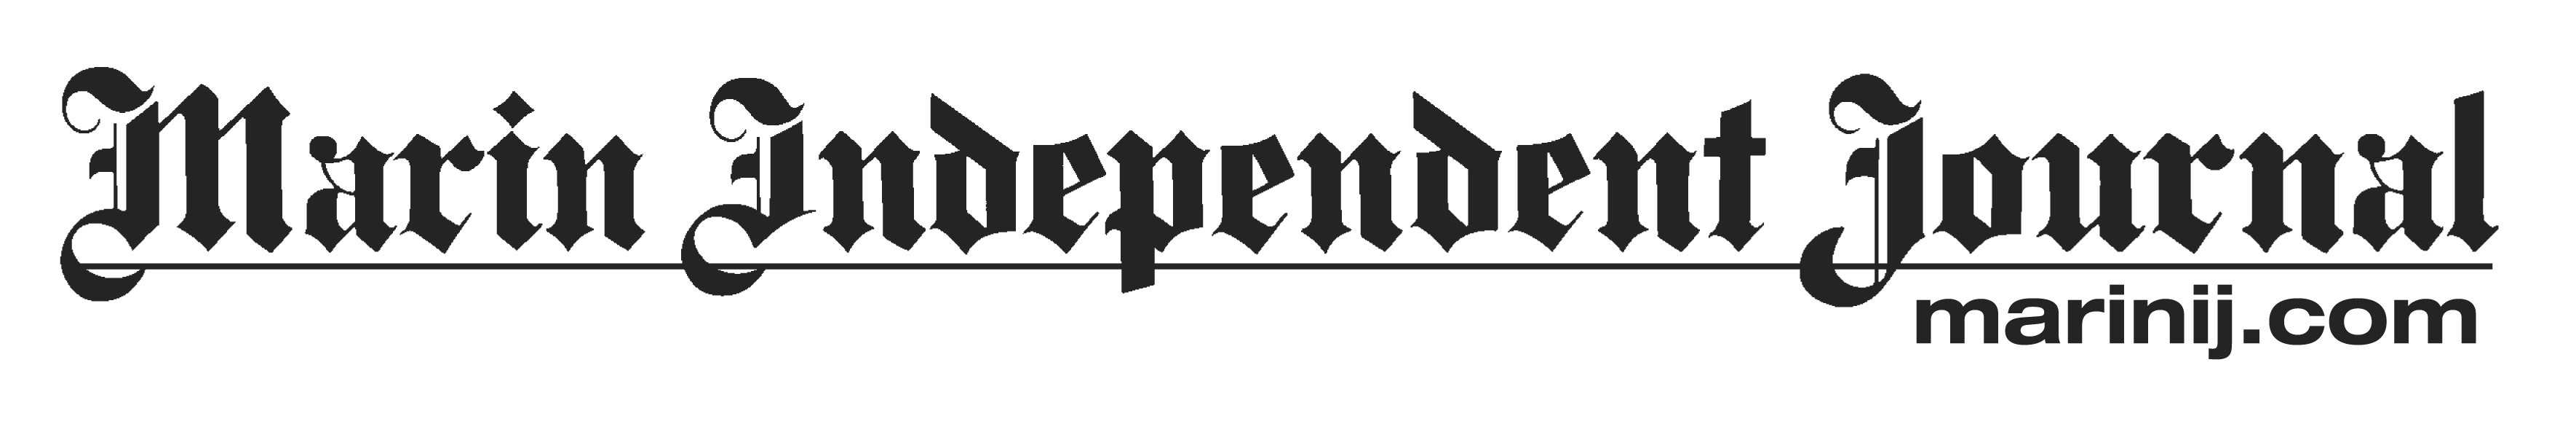 Marin_Independent_Journal_Logo.JPG